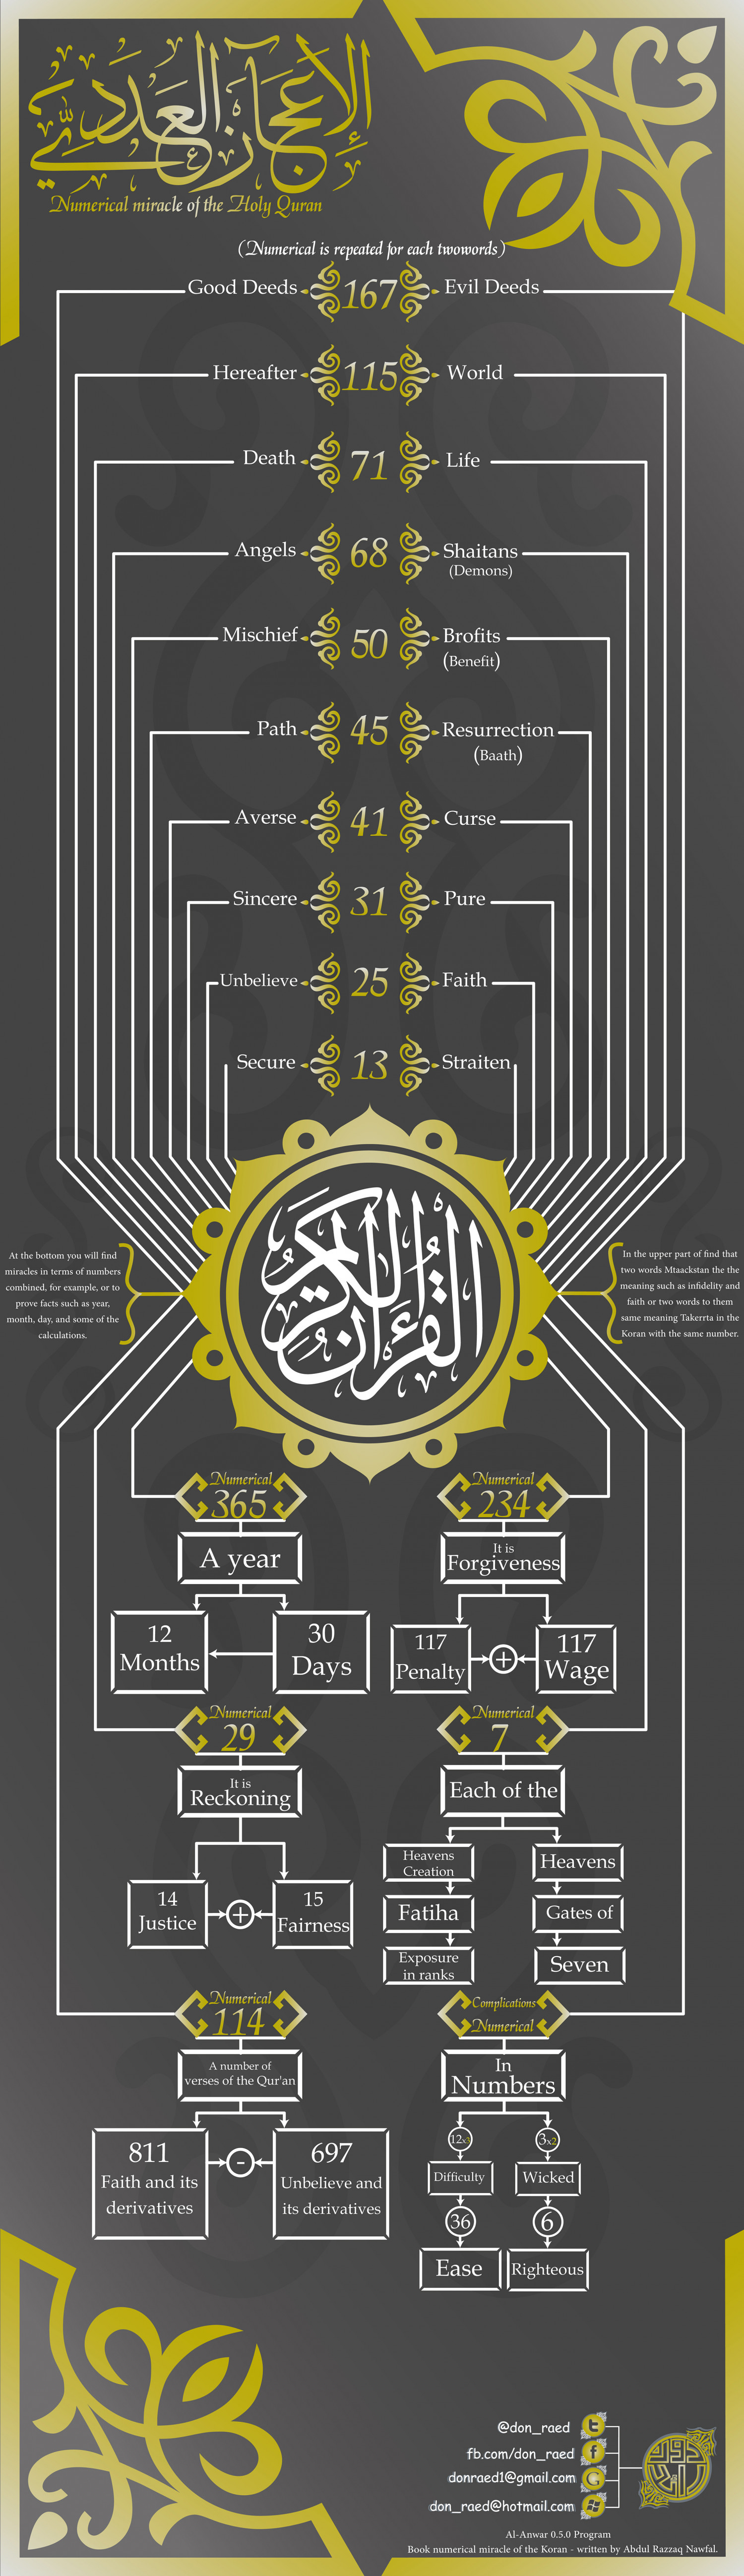 Numerical miracle of the Holy Quran (English) Infographic